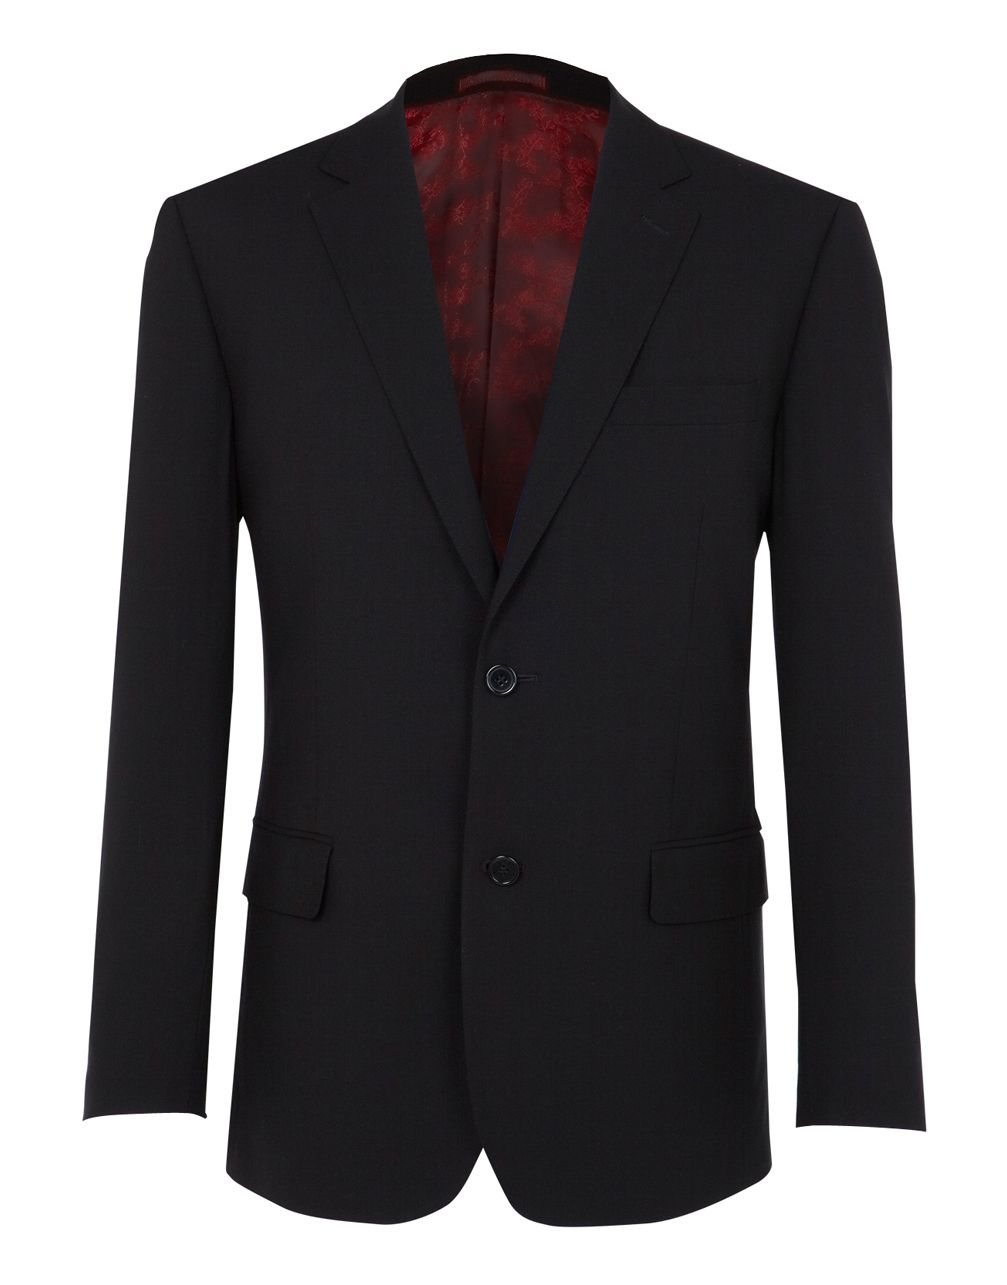 Sterling suit jacket